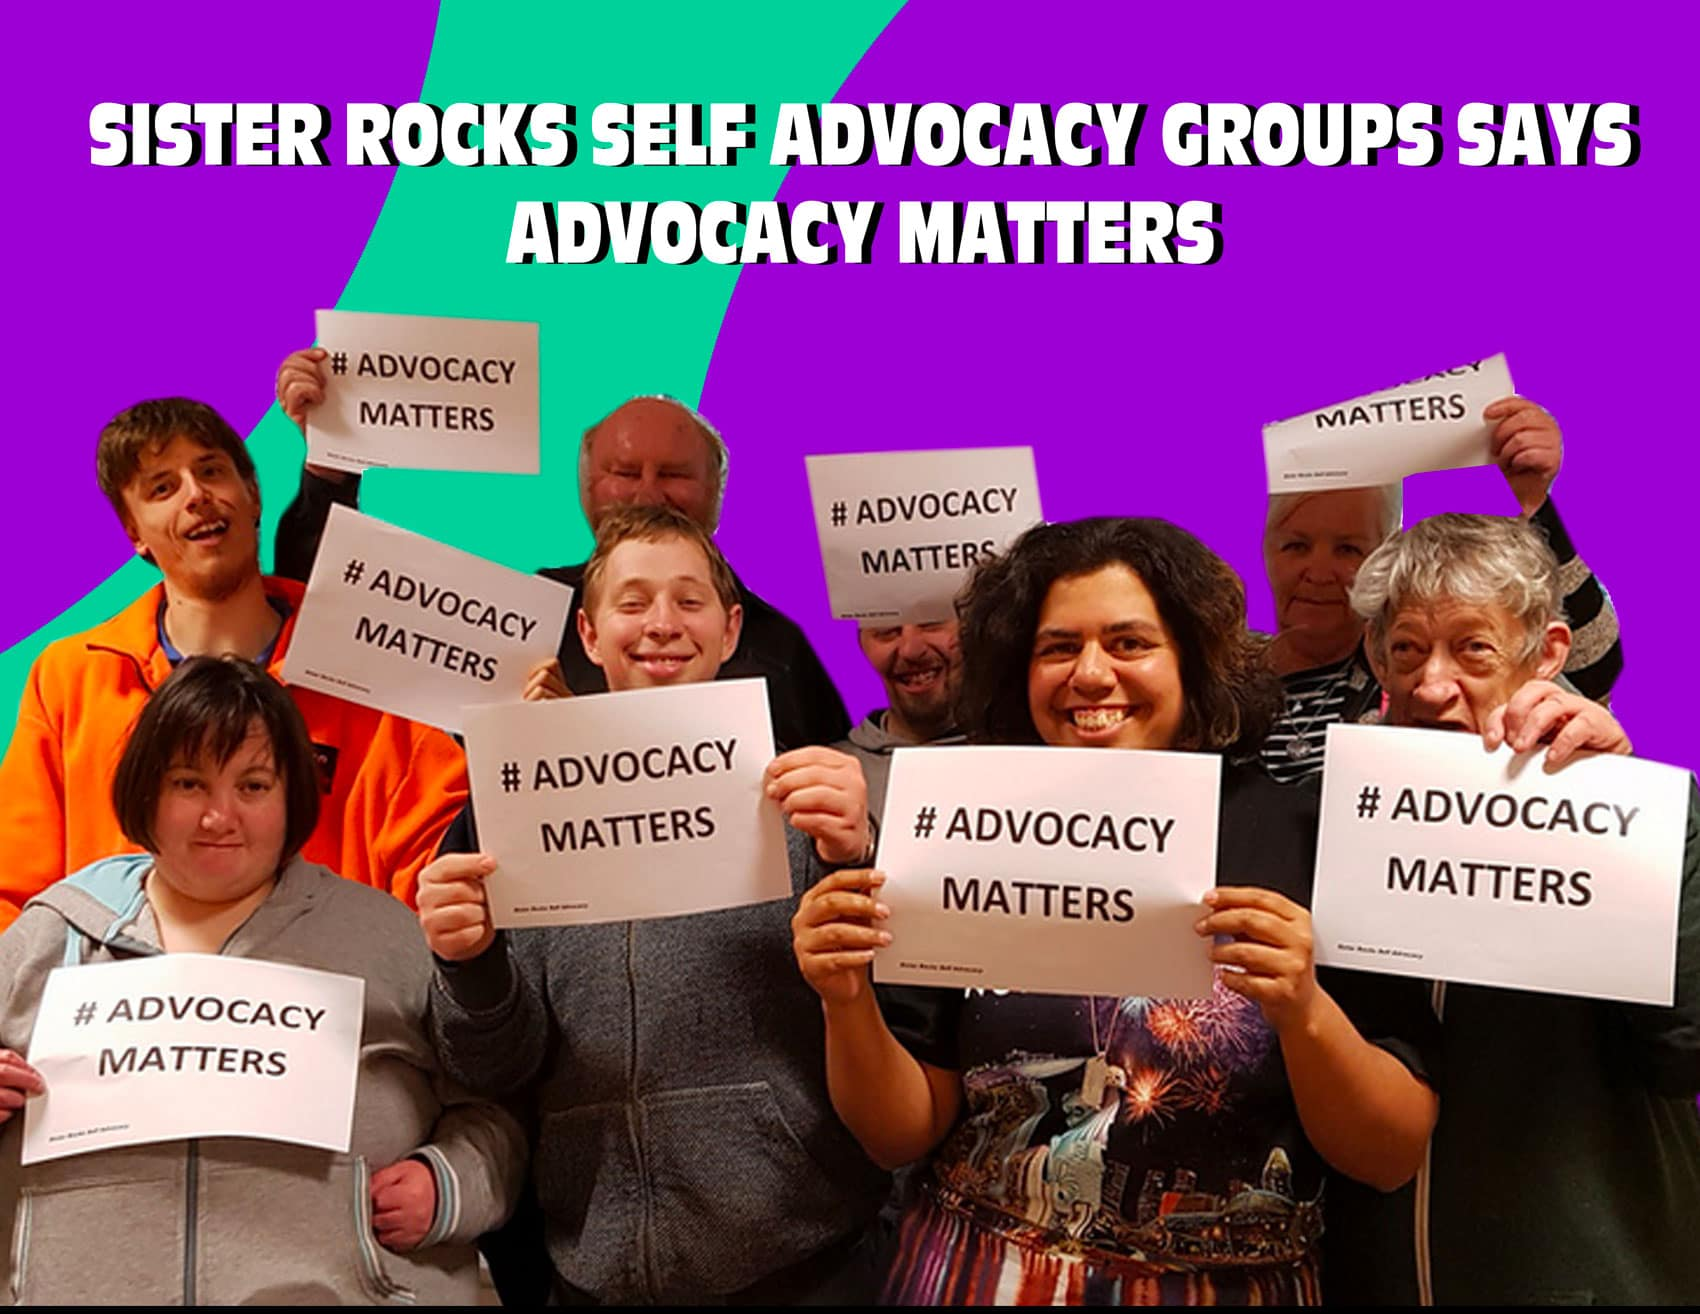 Picture of Sister Rocks Self Advocacy committee holding signs